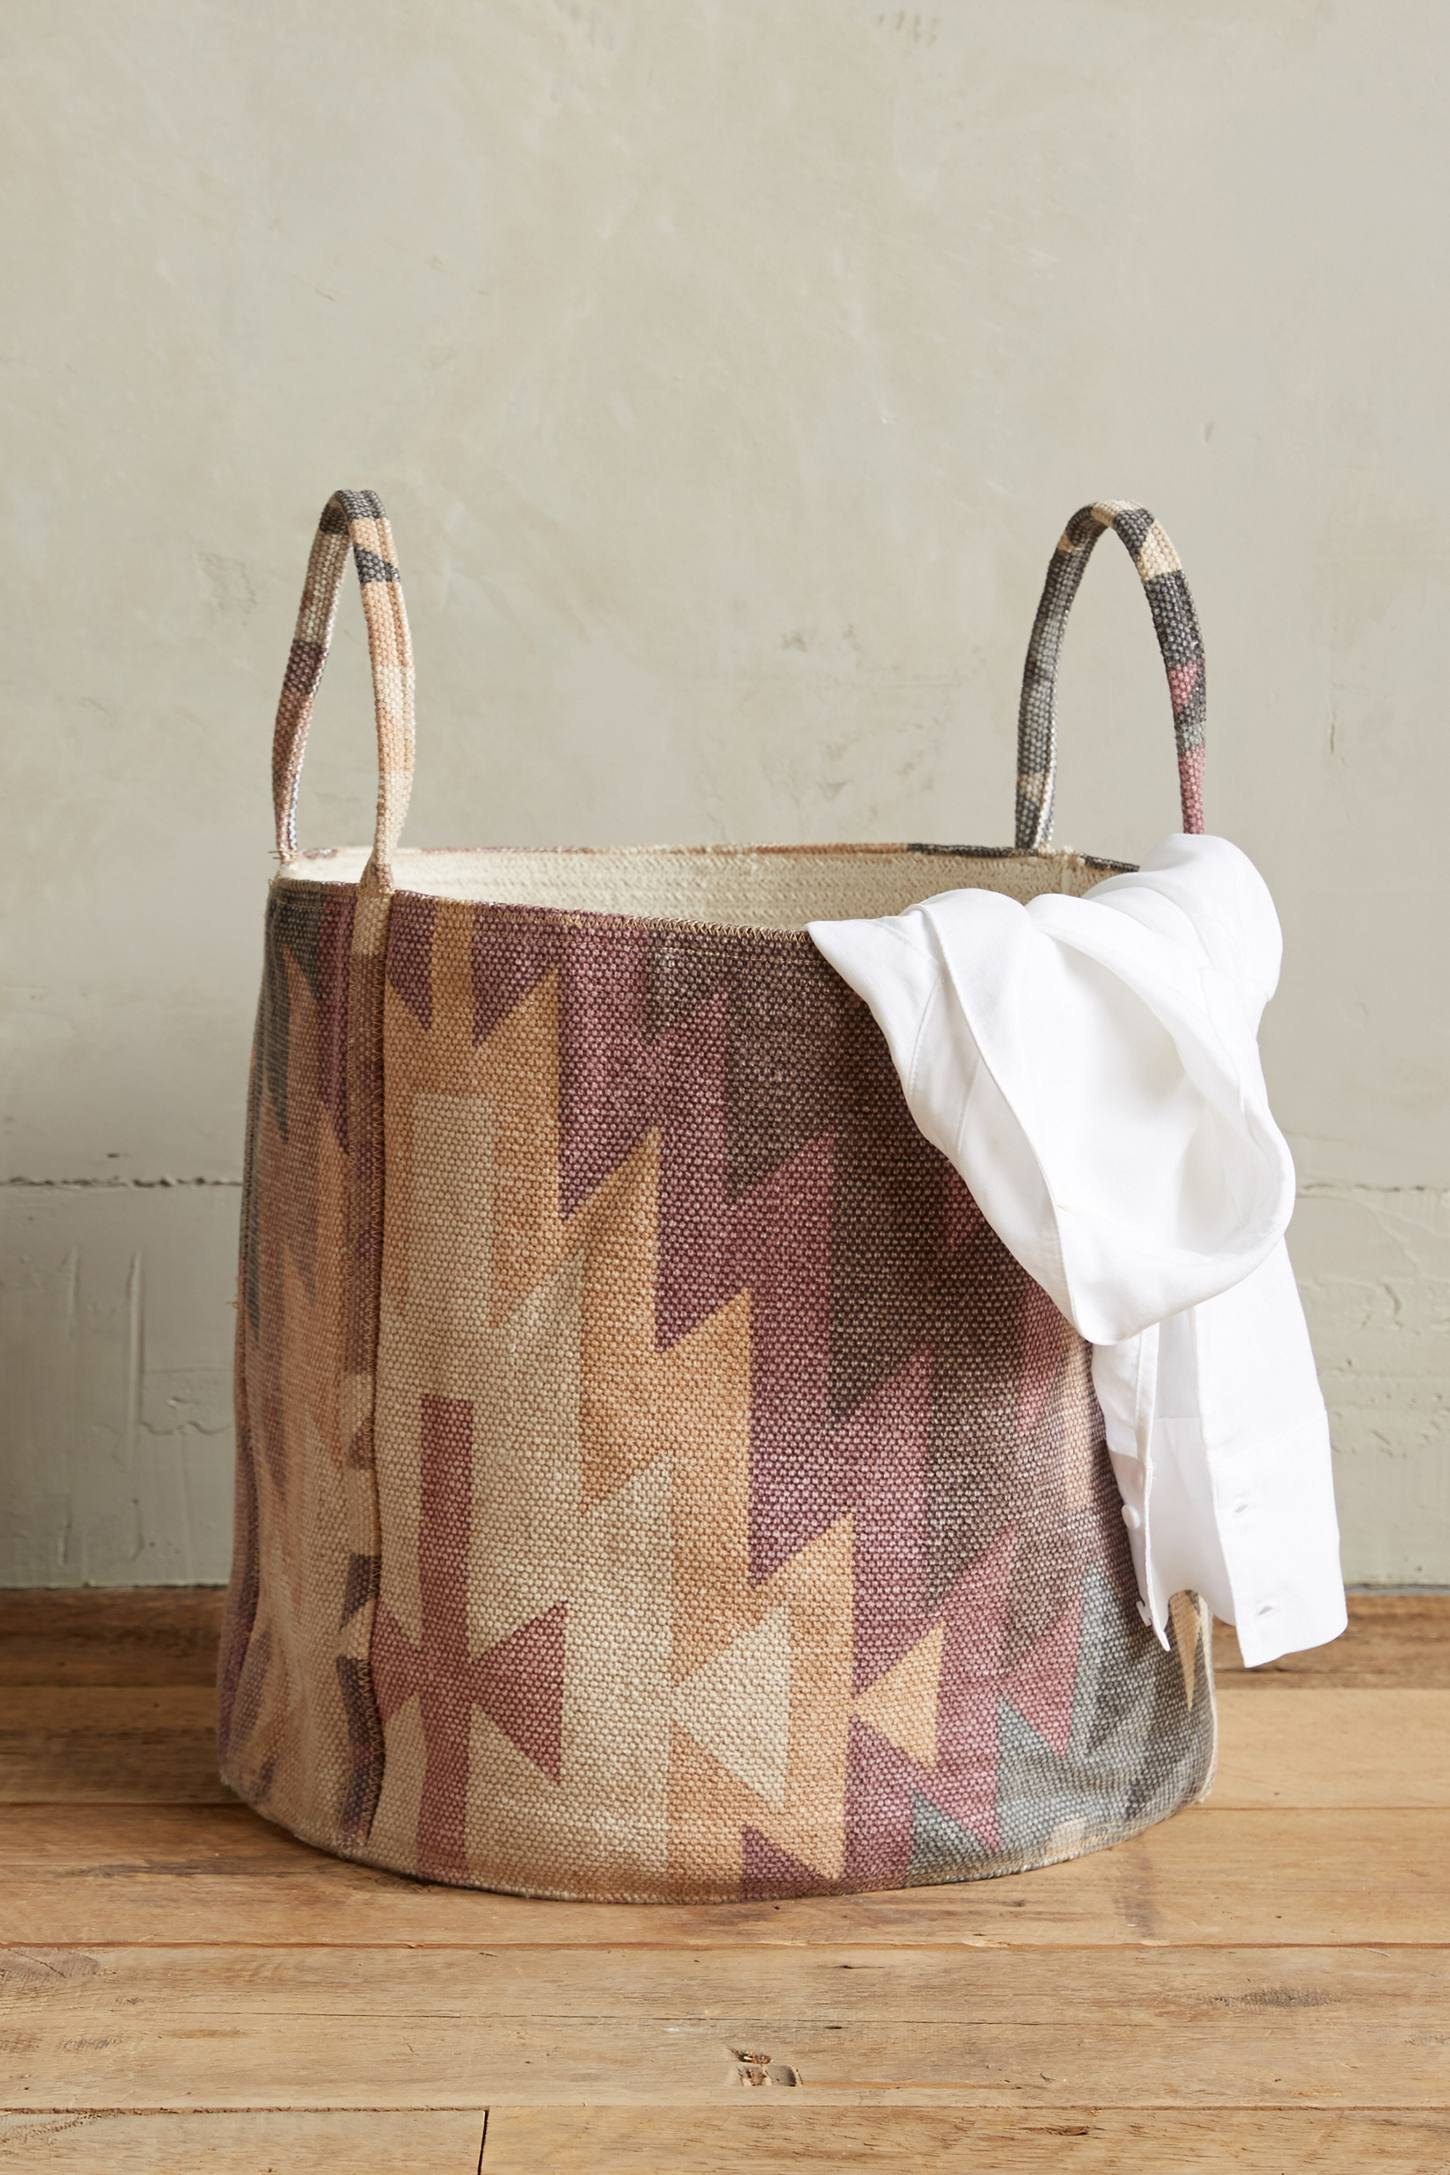 Patterned basket from Anthropologie